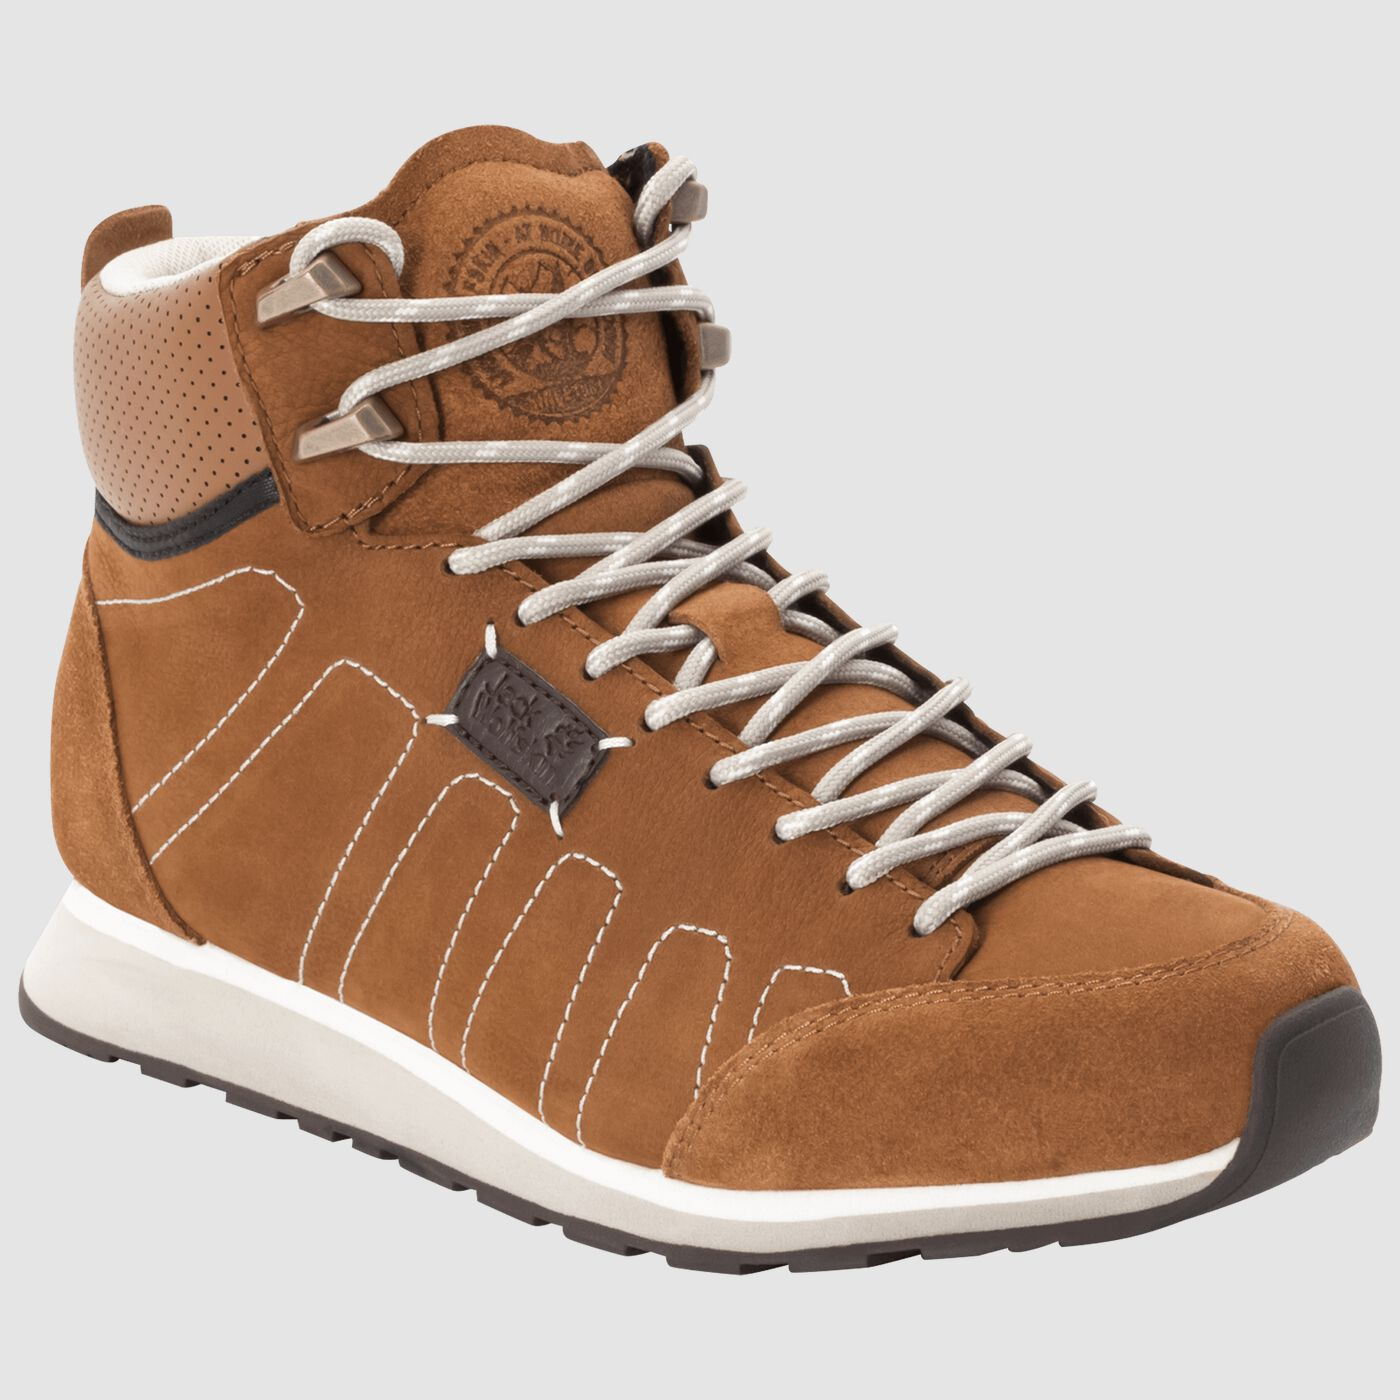 MOUNTAIN DNA LT MID W